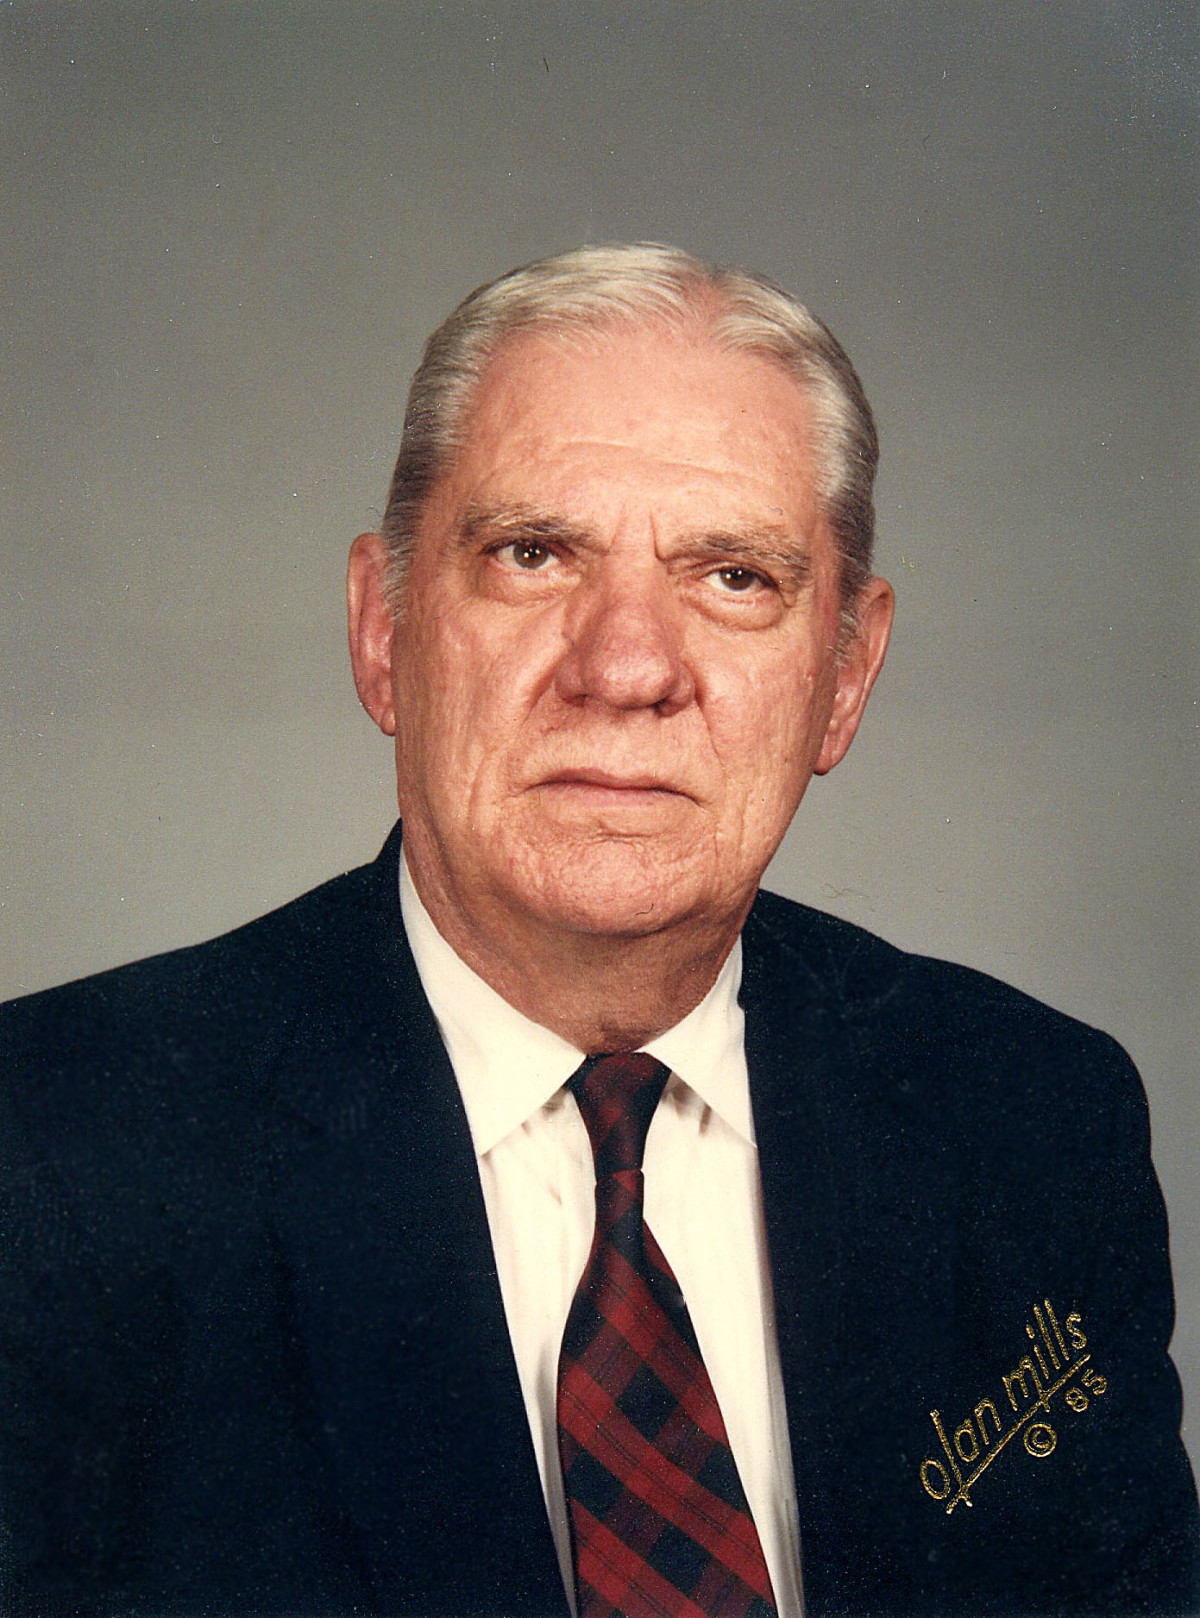 John C. Graves Portrait 1985